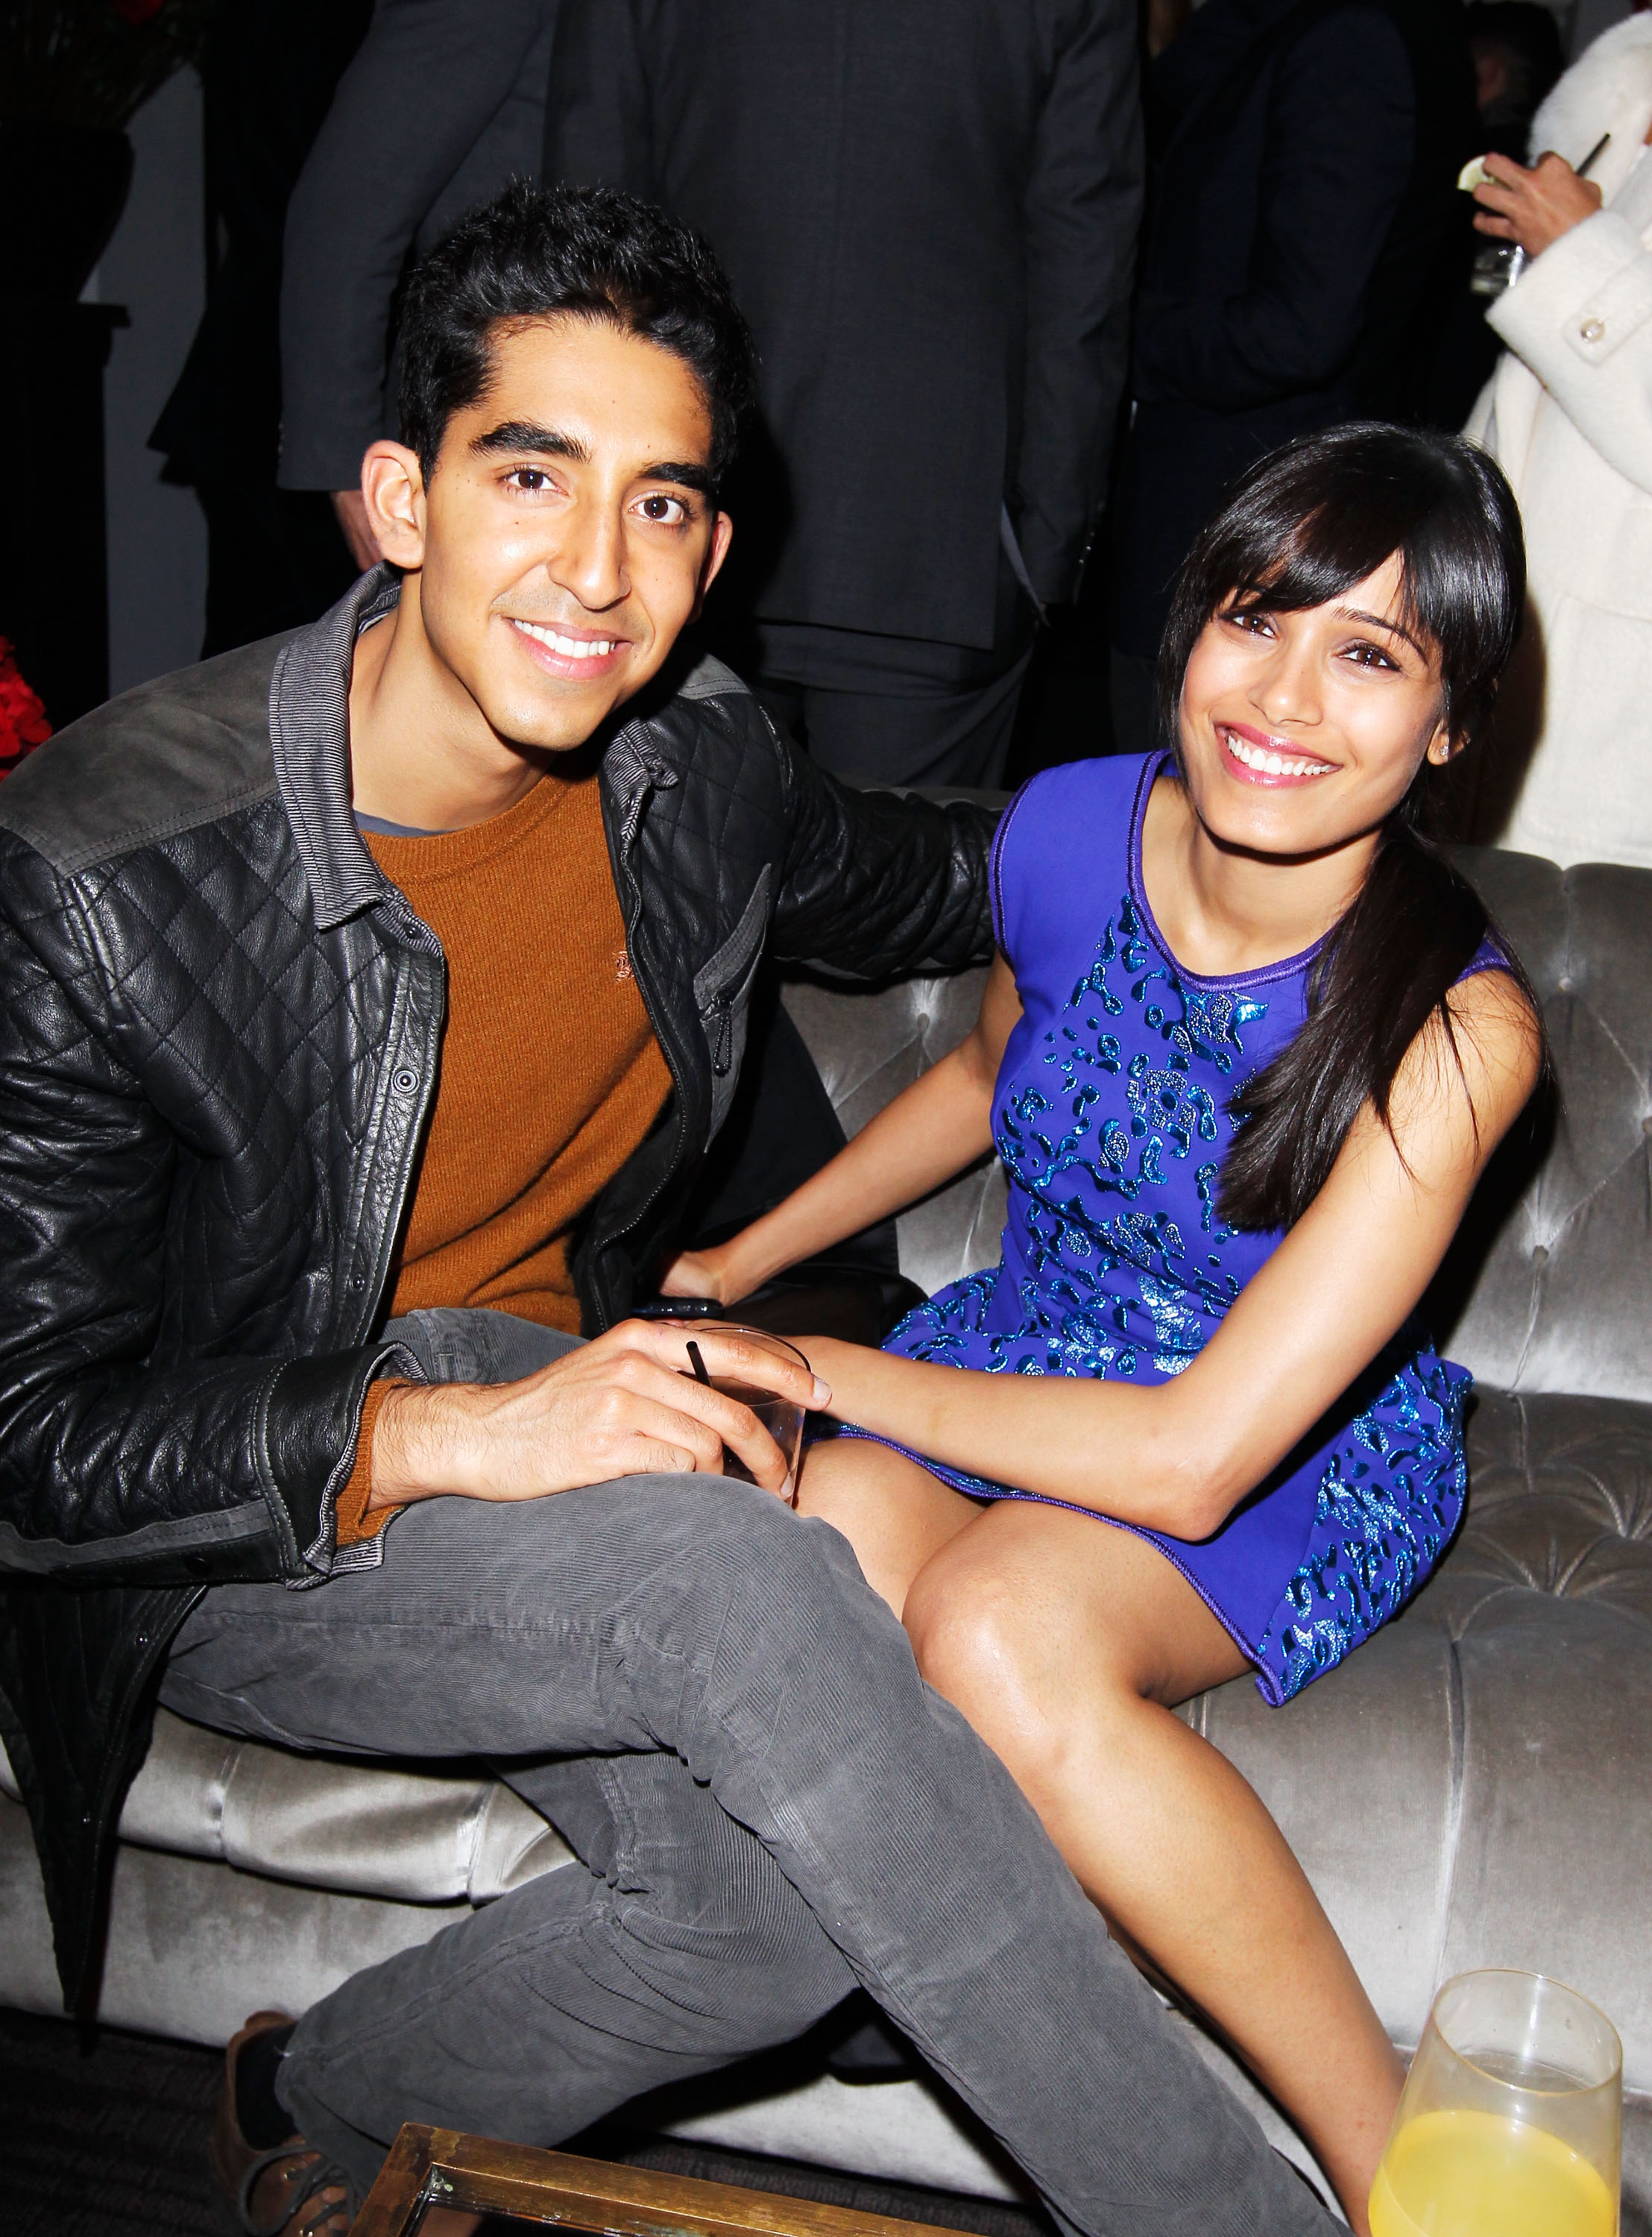 LOS ANGELES, CA - JANUARY 11:  Actors Freida Pinto and Dev Patel attend W Magazine's 'Best Performances Issue? and the Golden